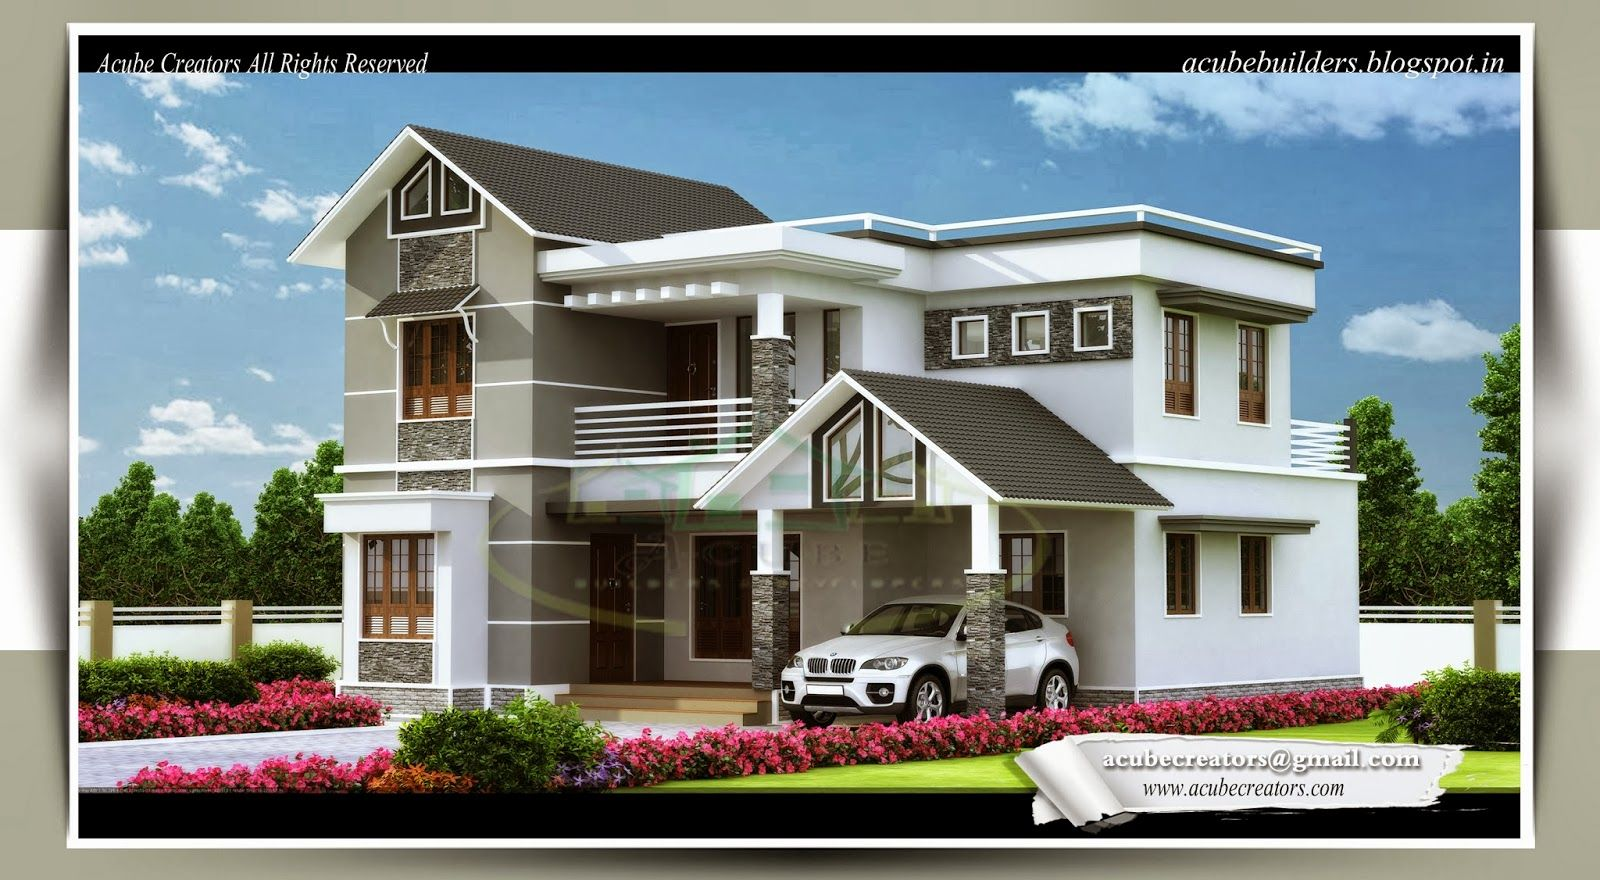 Home Design Pictures Captivating Home Design Gallery Fresh Ideas Kerala Home Design Photos  Home . Design Decoration